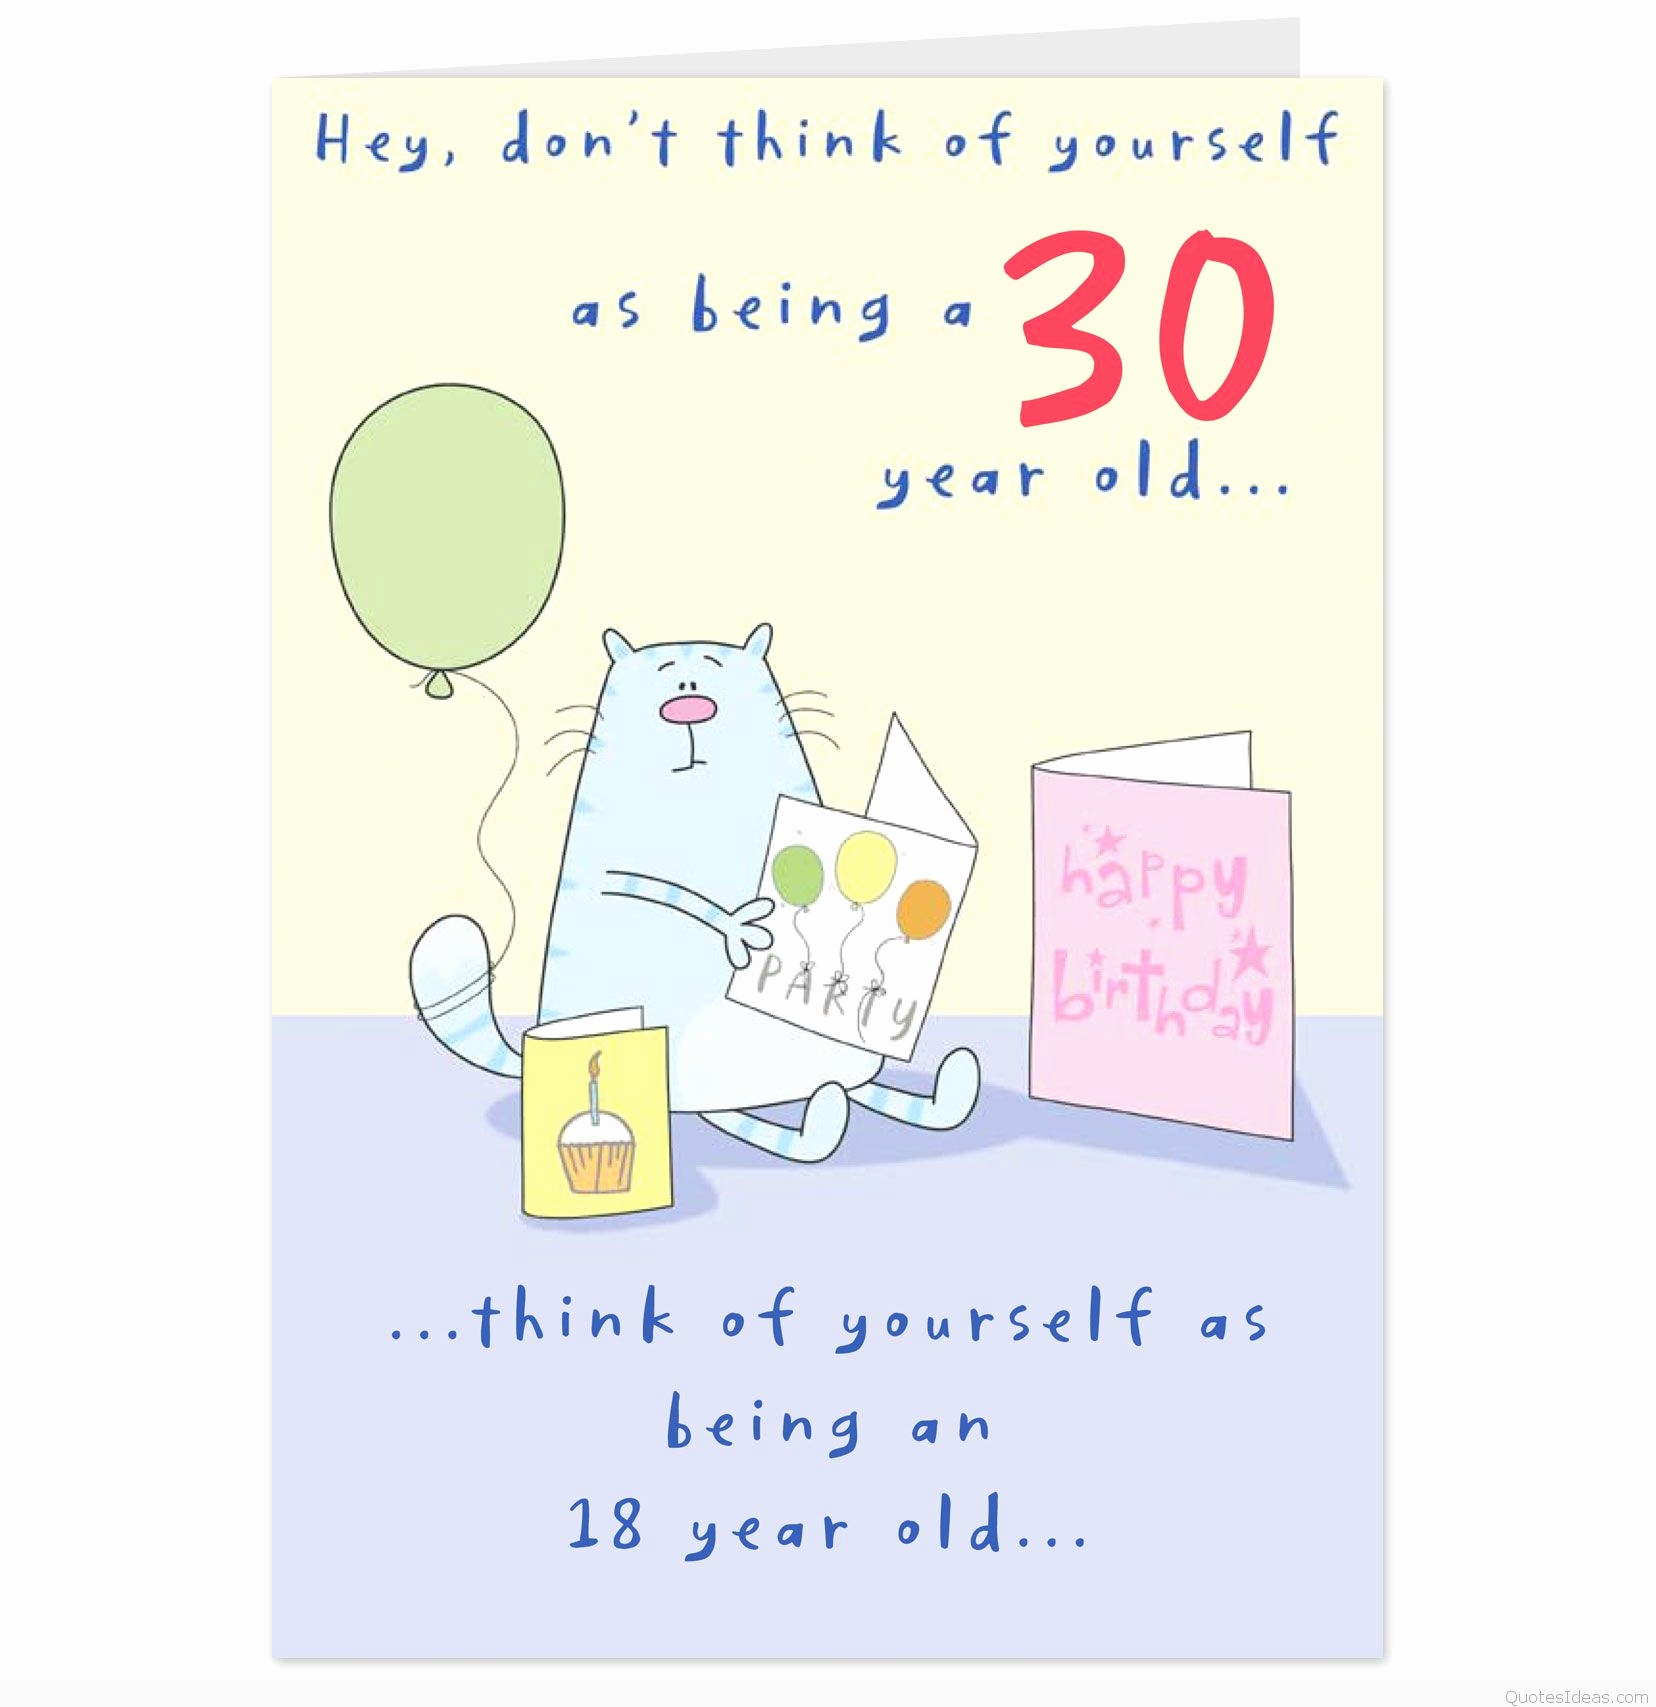 30th birthday card messages for son ; son-birthday-card-messages-luxury-design-dirty-30th-birthday-card-messages-as-well-as-30th-of-son-birthday-card-messages